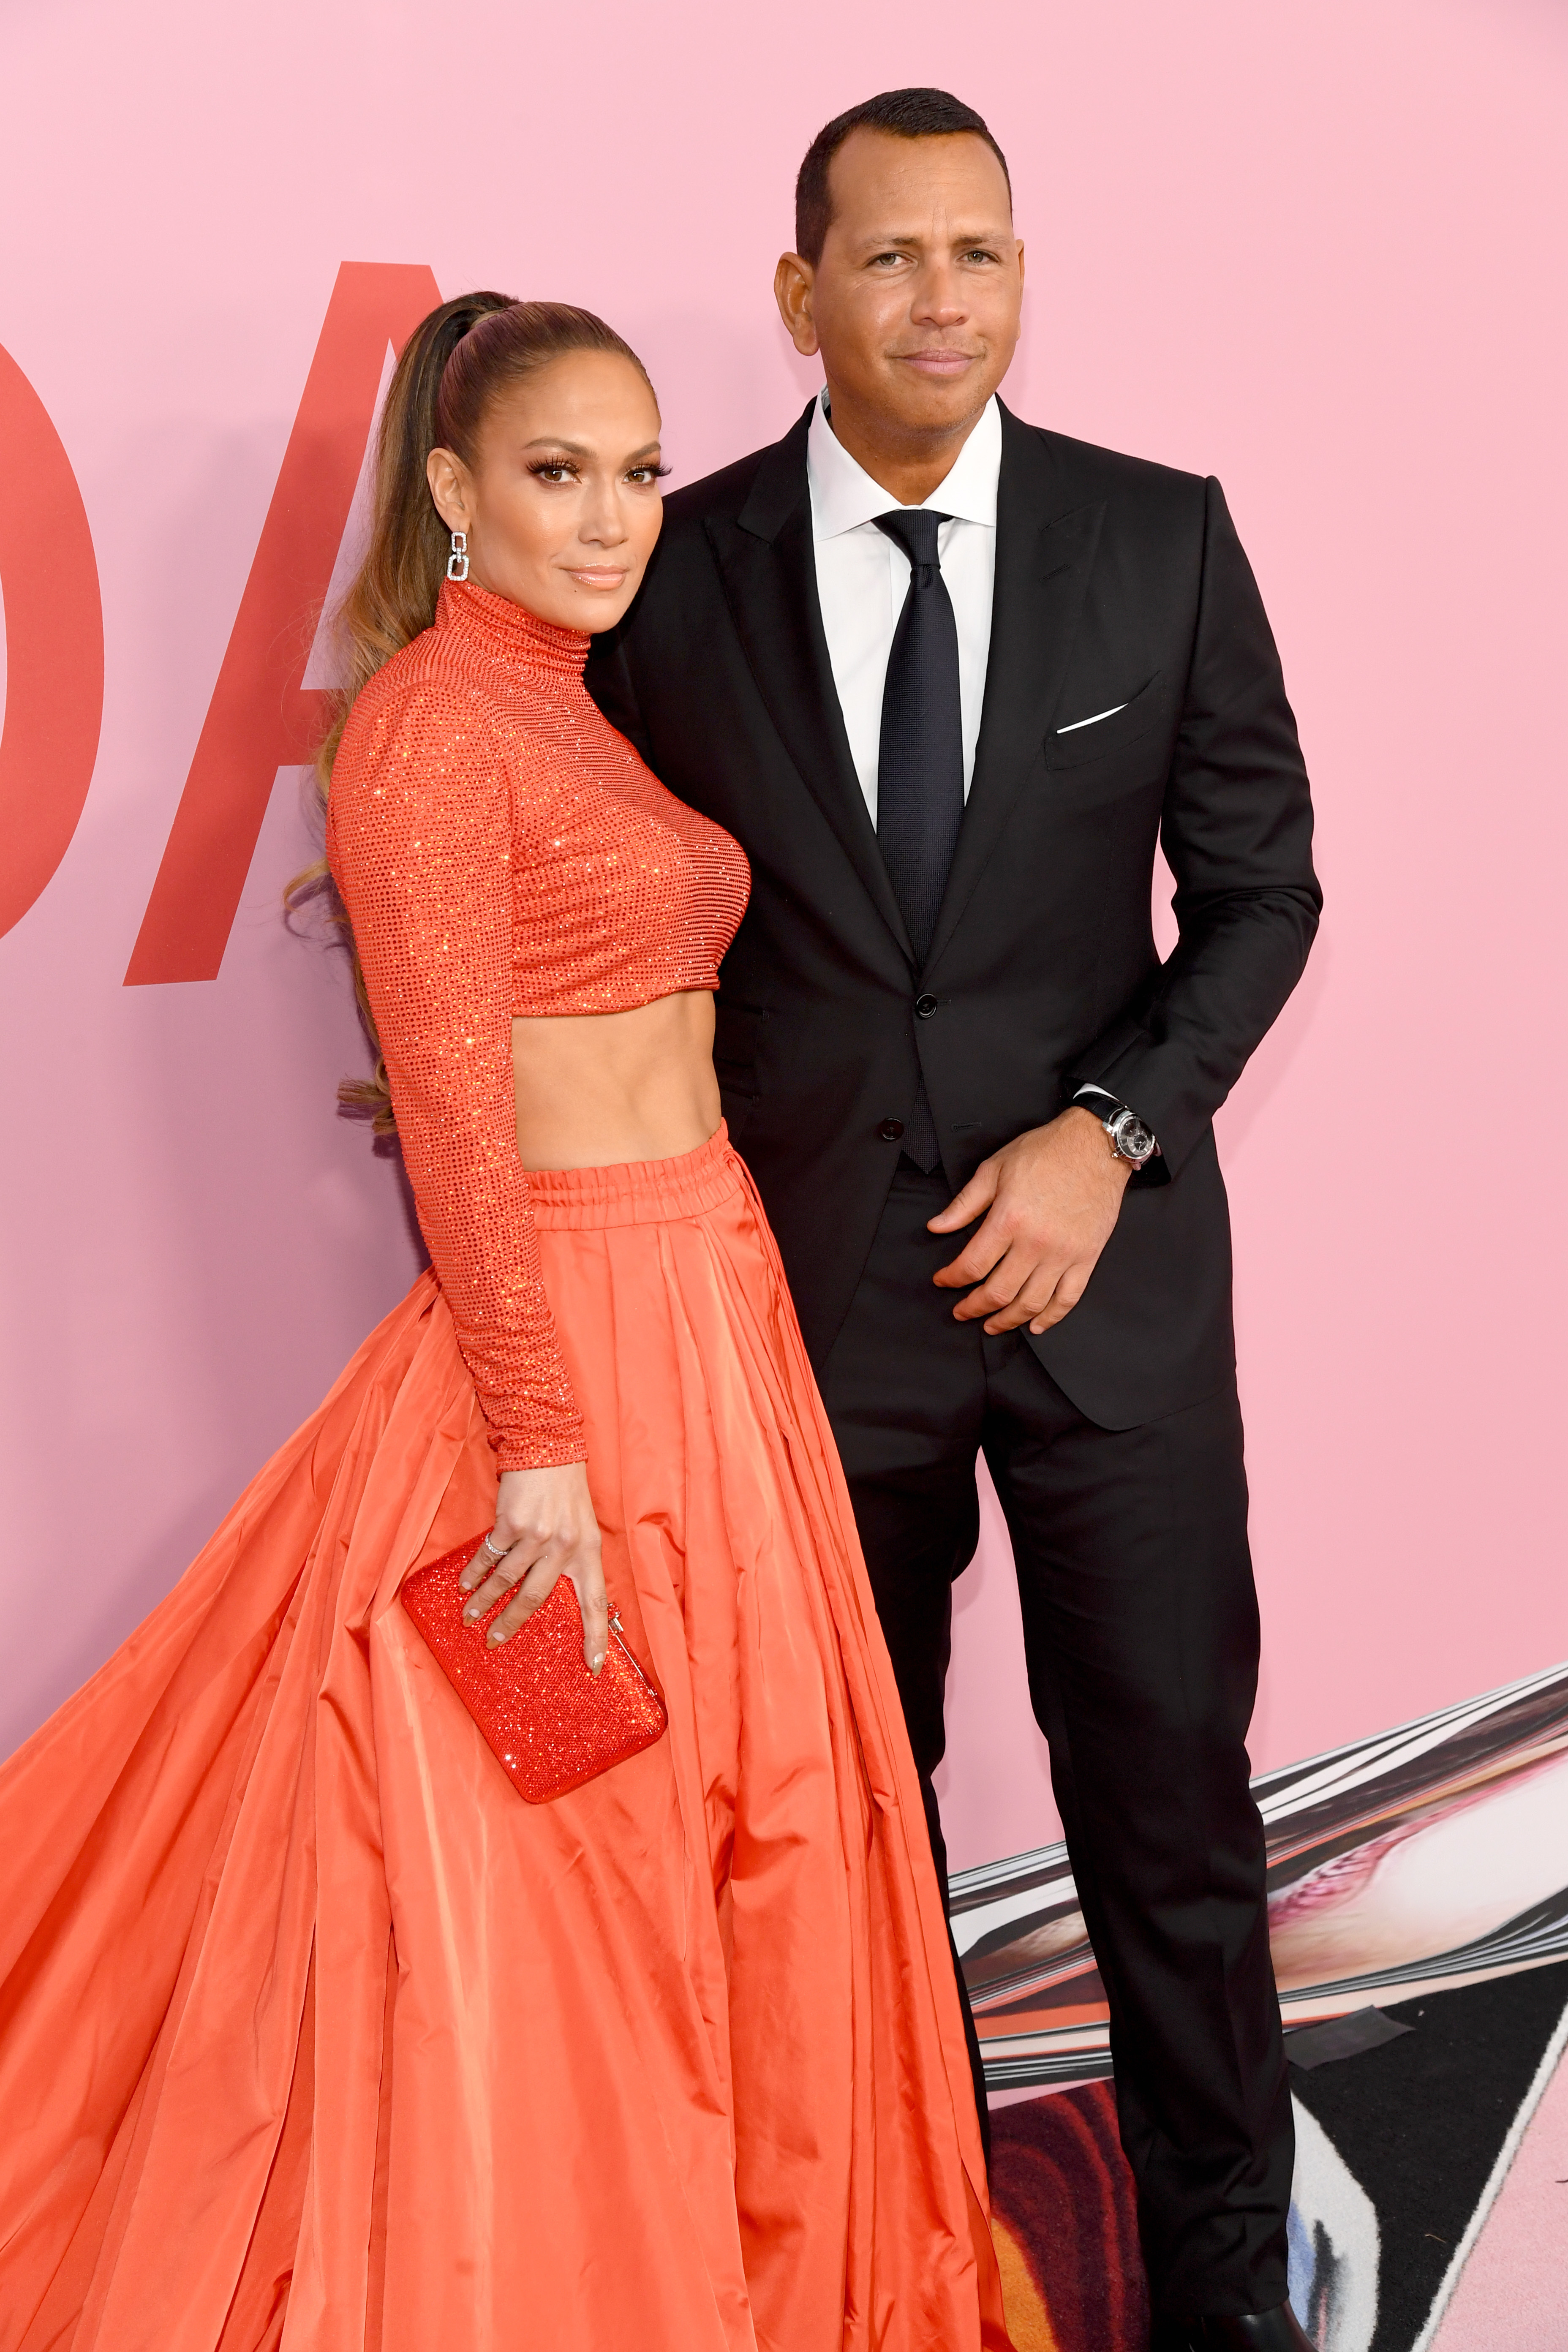 Jennifer Lopez and Alex Rodriguez attends the CFDA Fashion Awards at the Brooklyn Museum of Art in New York City on June 3, 2019.